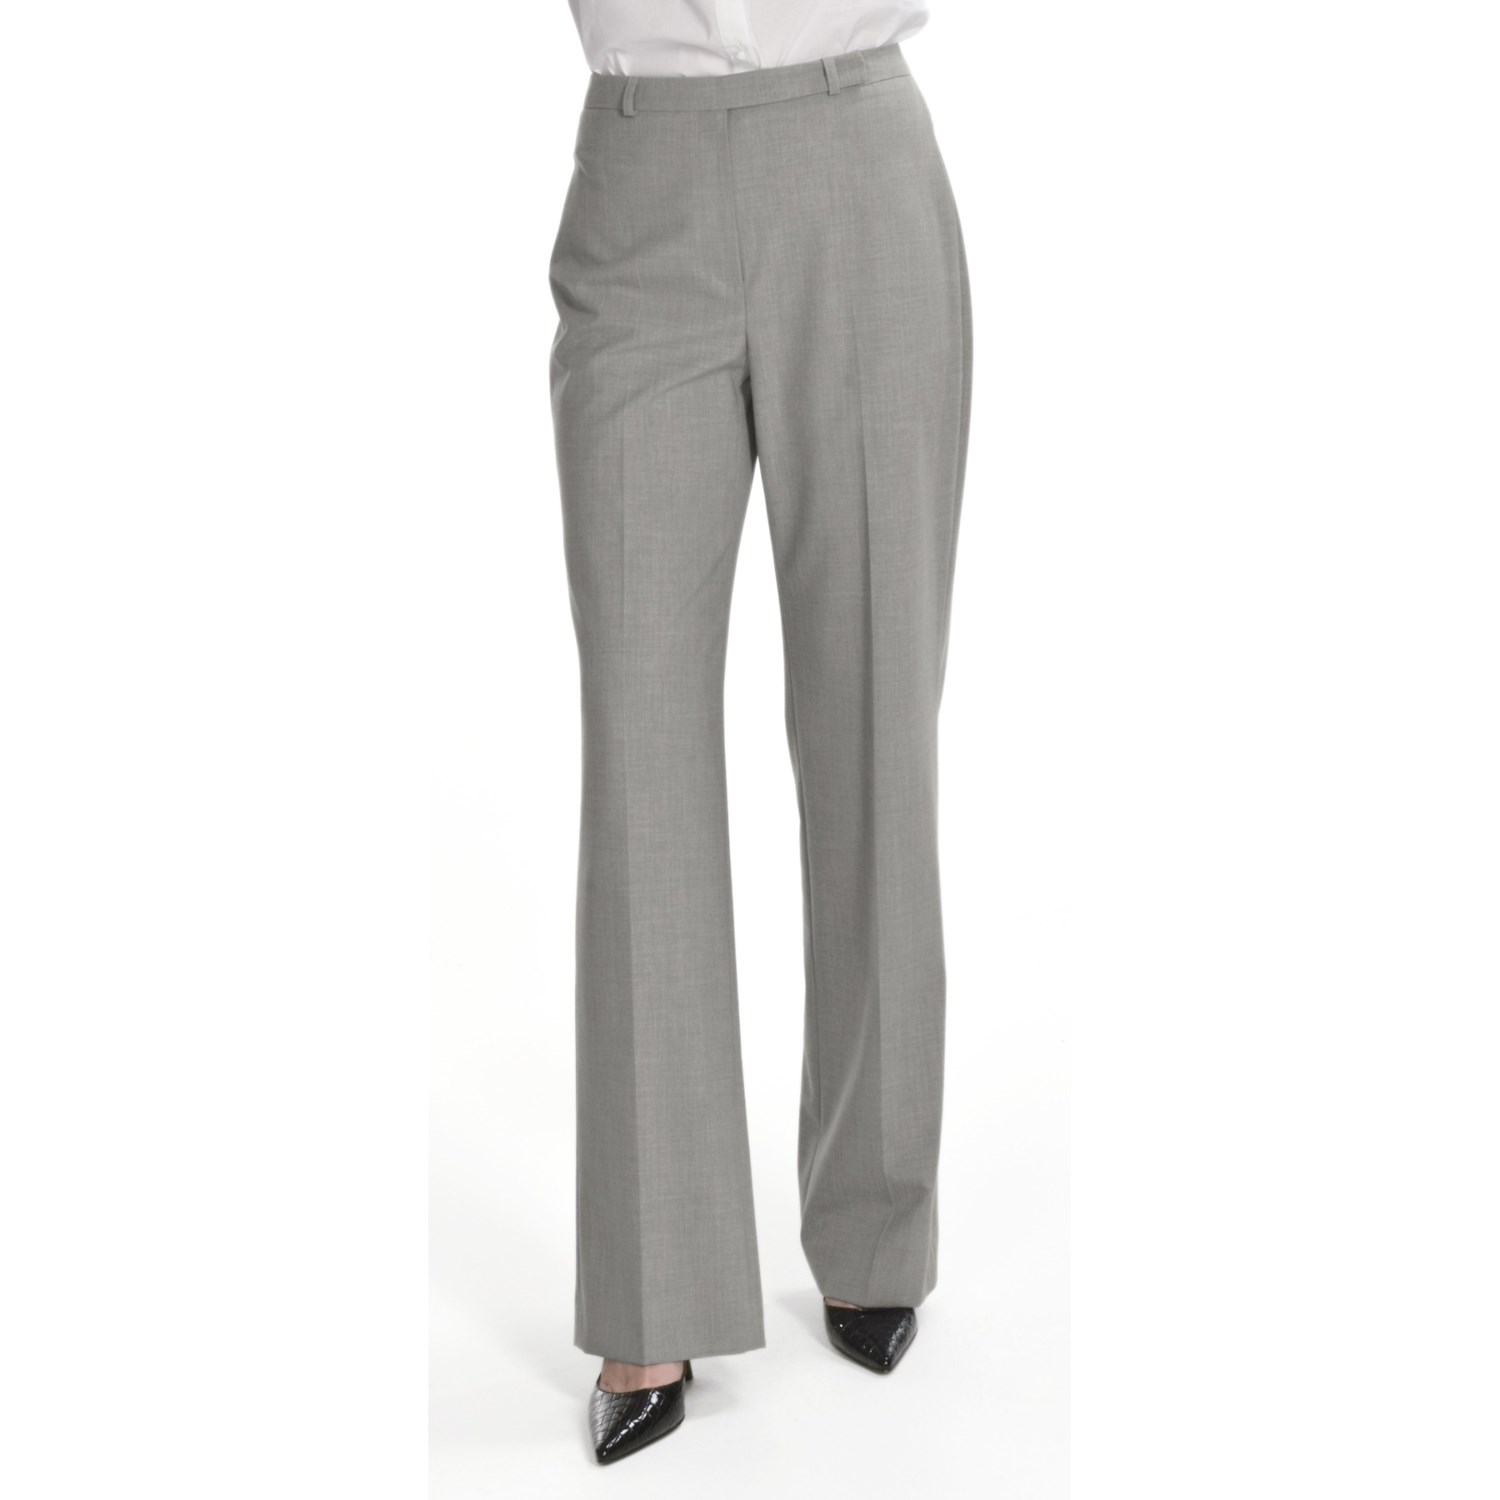 23 popular Grey Dress Pants Outfit Women – playzoa.com